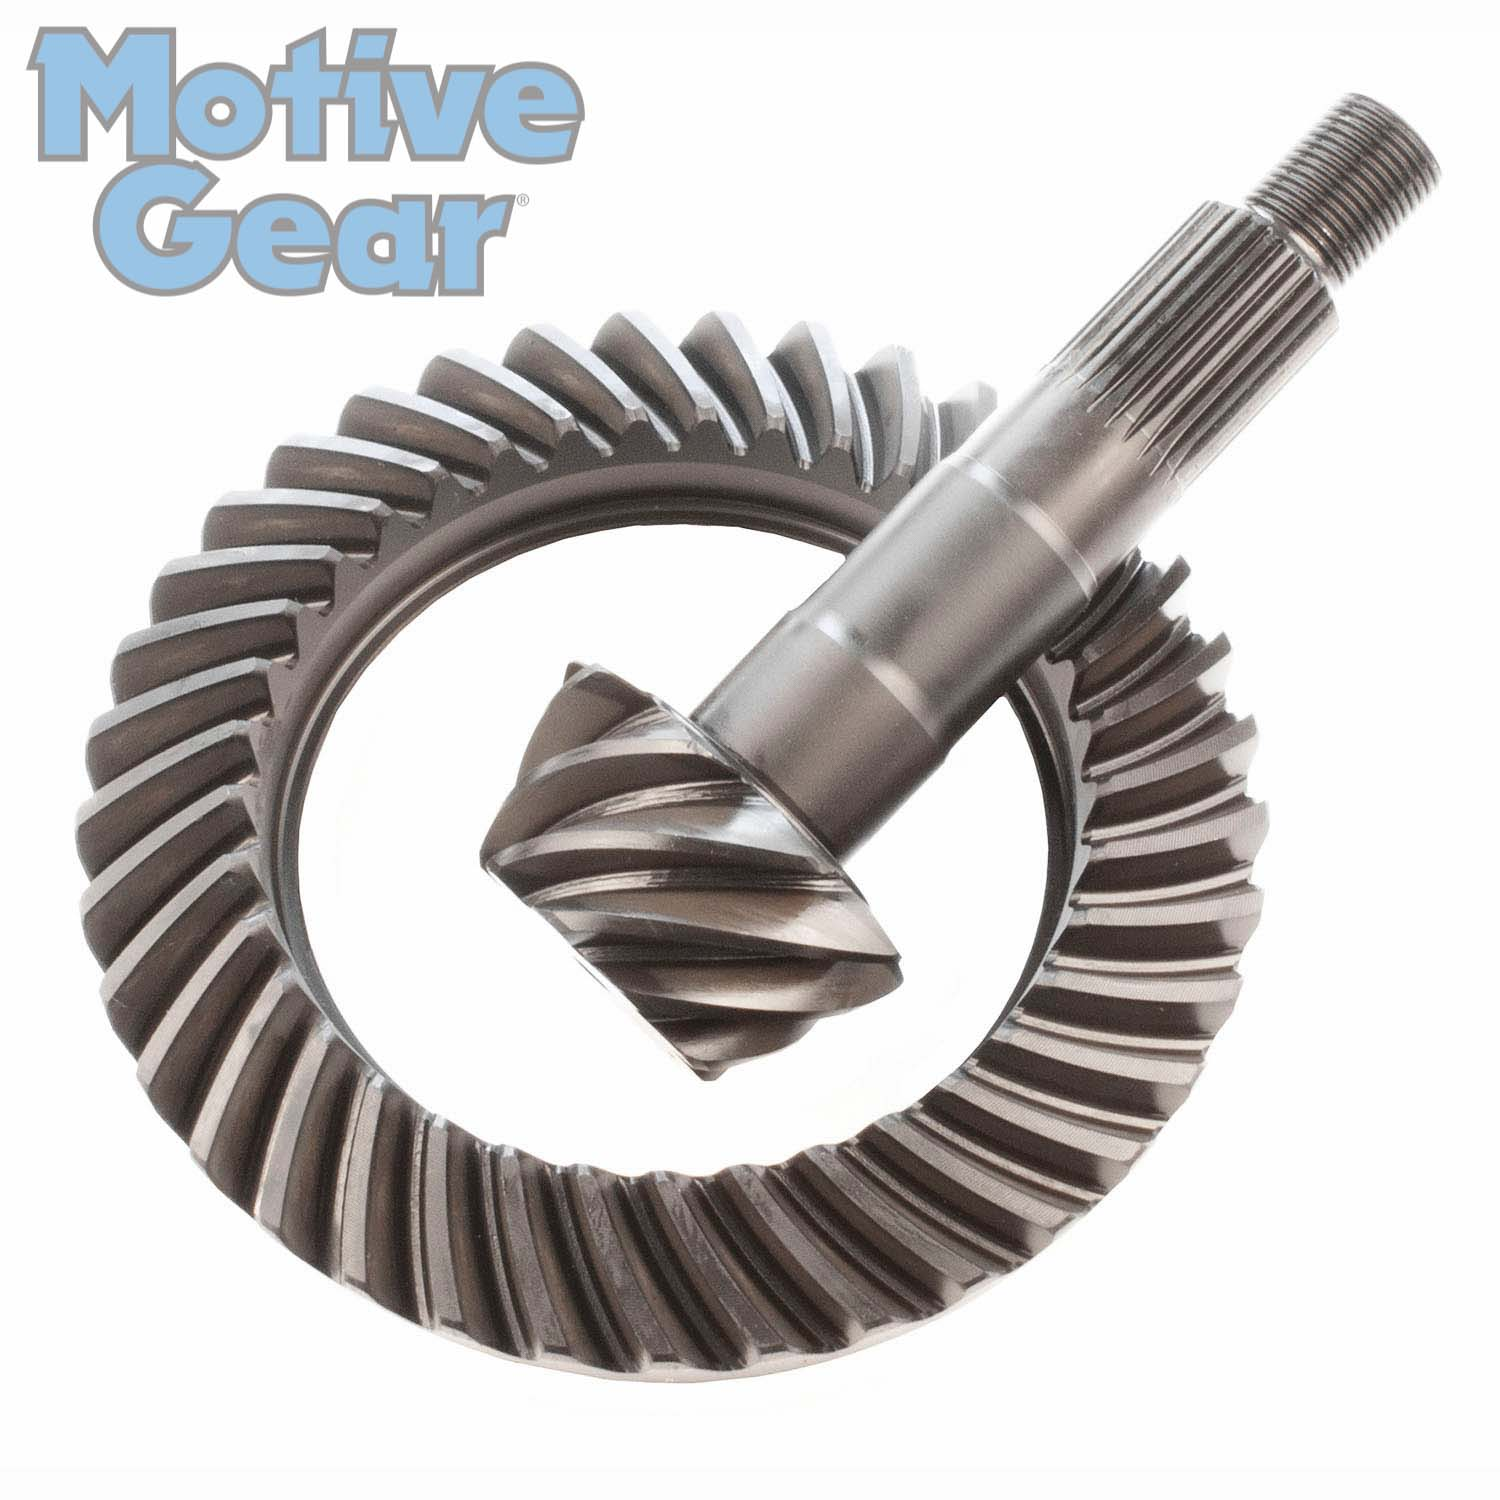 Chevy GM 7.2 IFS Motive Gear Ring and Pinion Gear Set